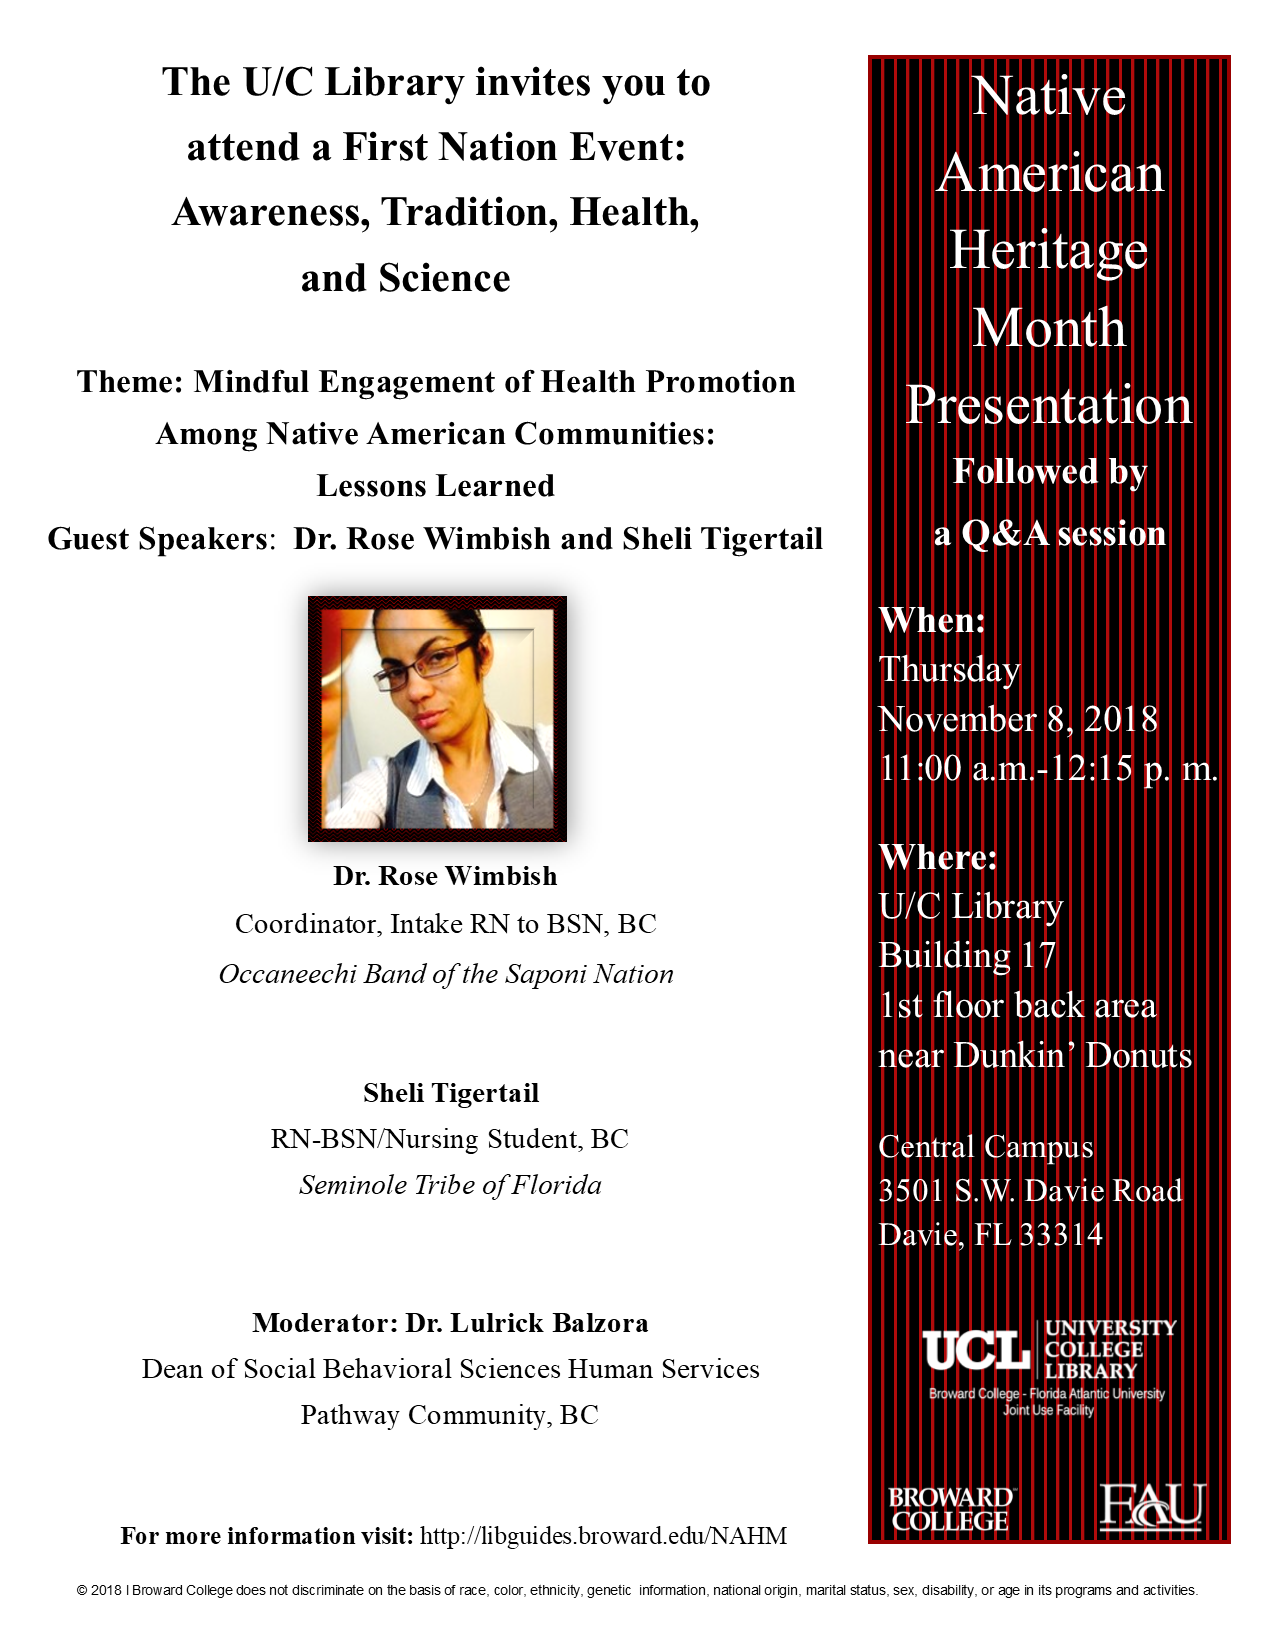 First Nation Event: Awareness, Tradition, Health, and Science